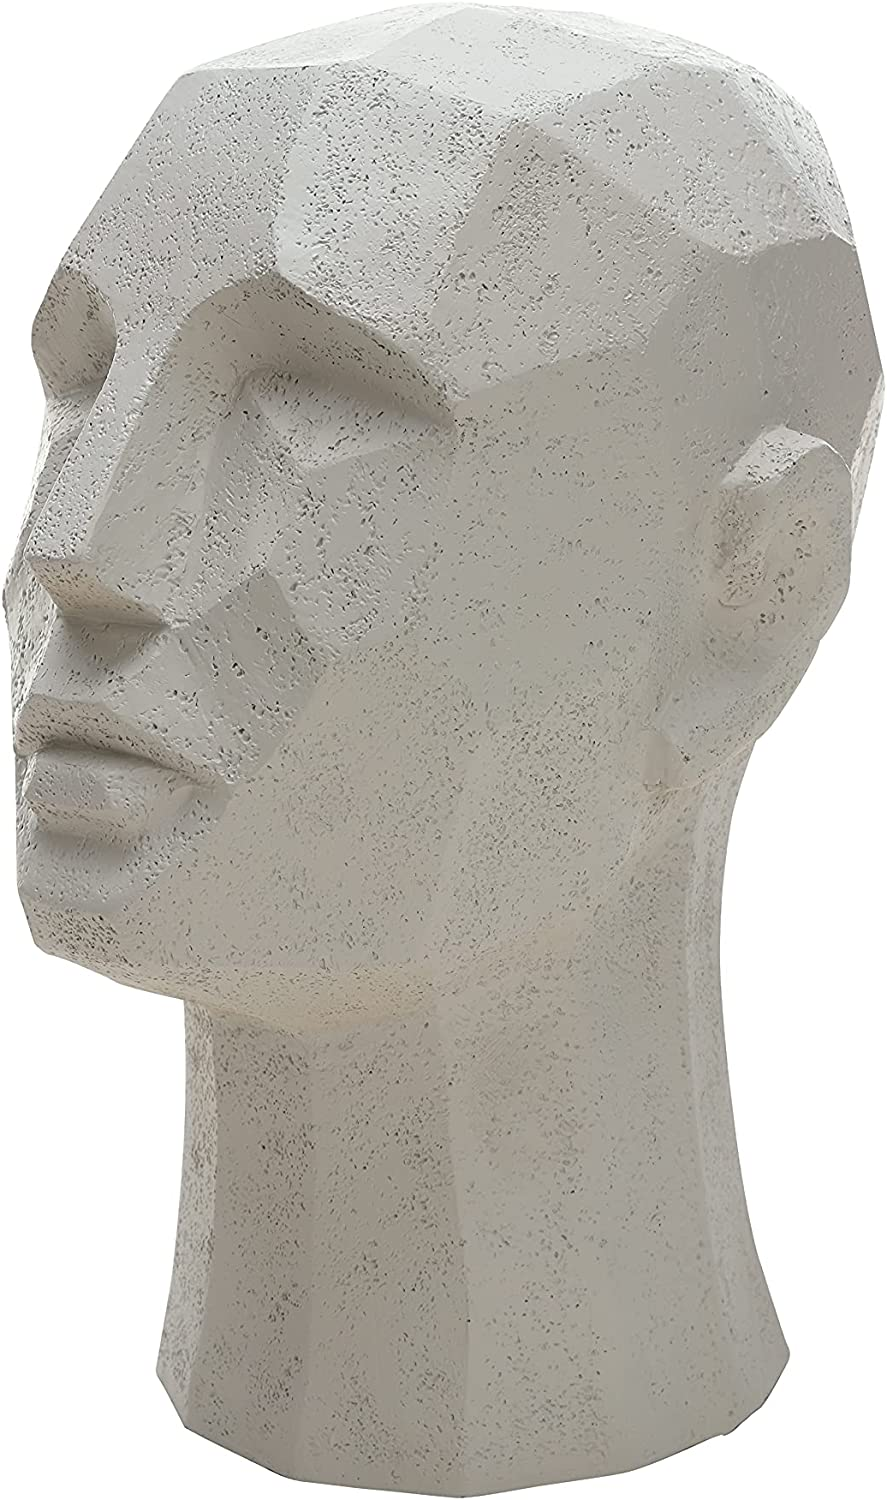 DN DECONATION Gray Man Head Statue, Polyresin Abstract Head Sculpture, Modern Shelf Decoration, Large Figurine Table Accent for Office Home Decor, Unique Gift